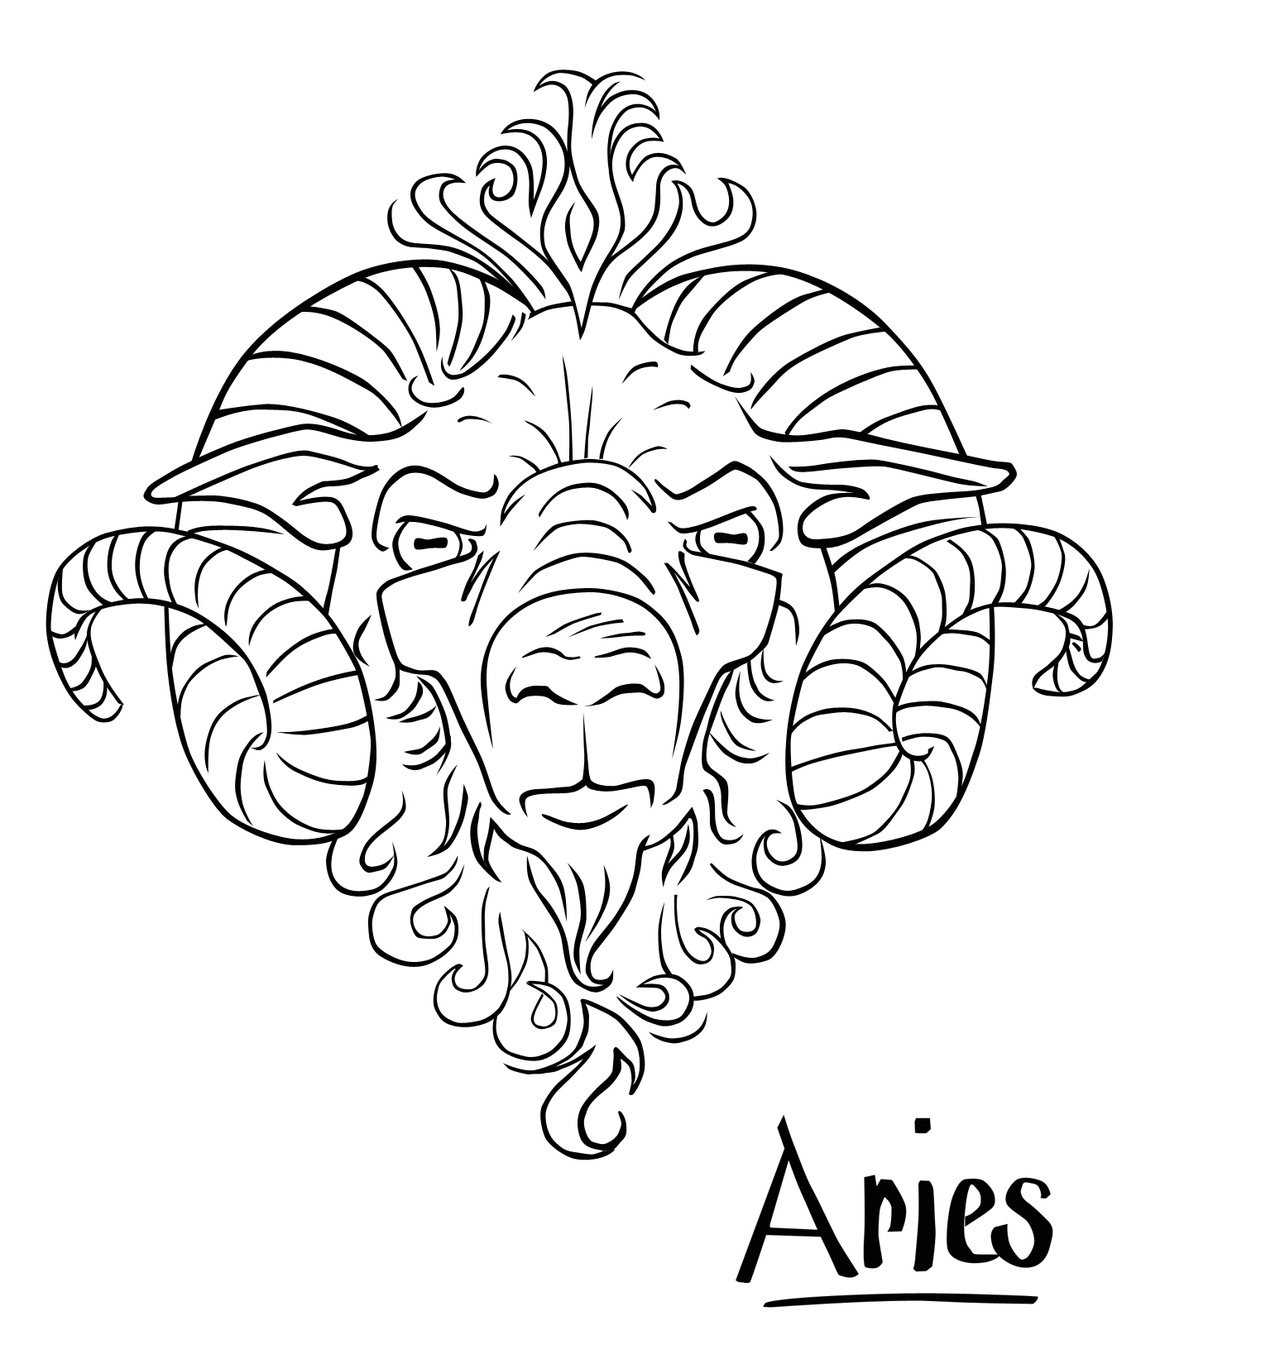 aries tattoos designs ideas and meaning tattoos for you. Black Bedroom Furniture Sets. Home Design Ideas